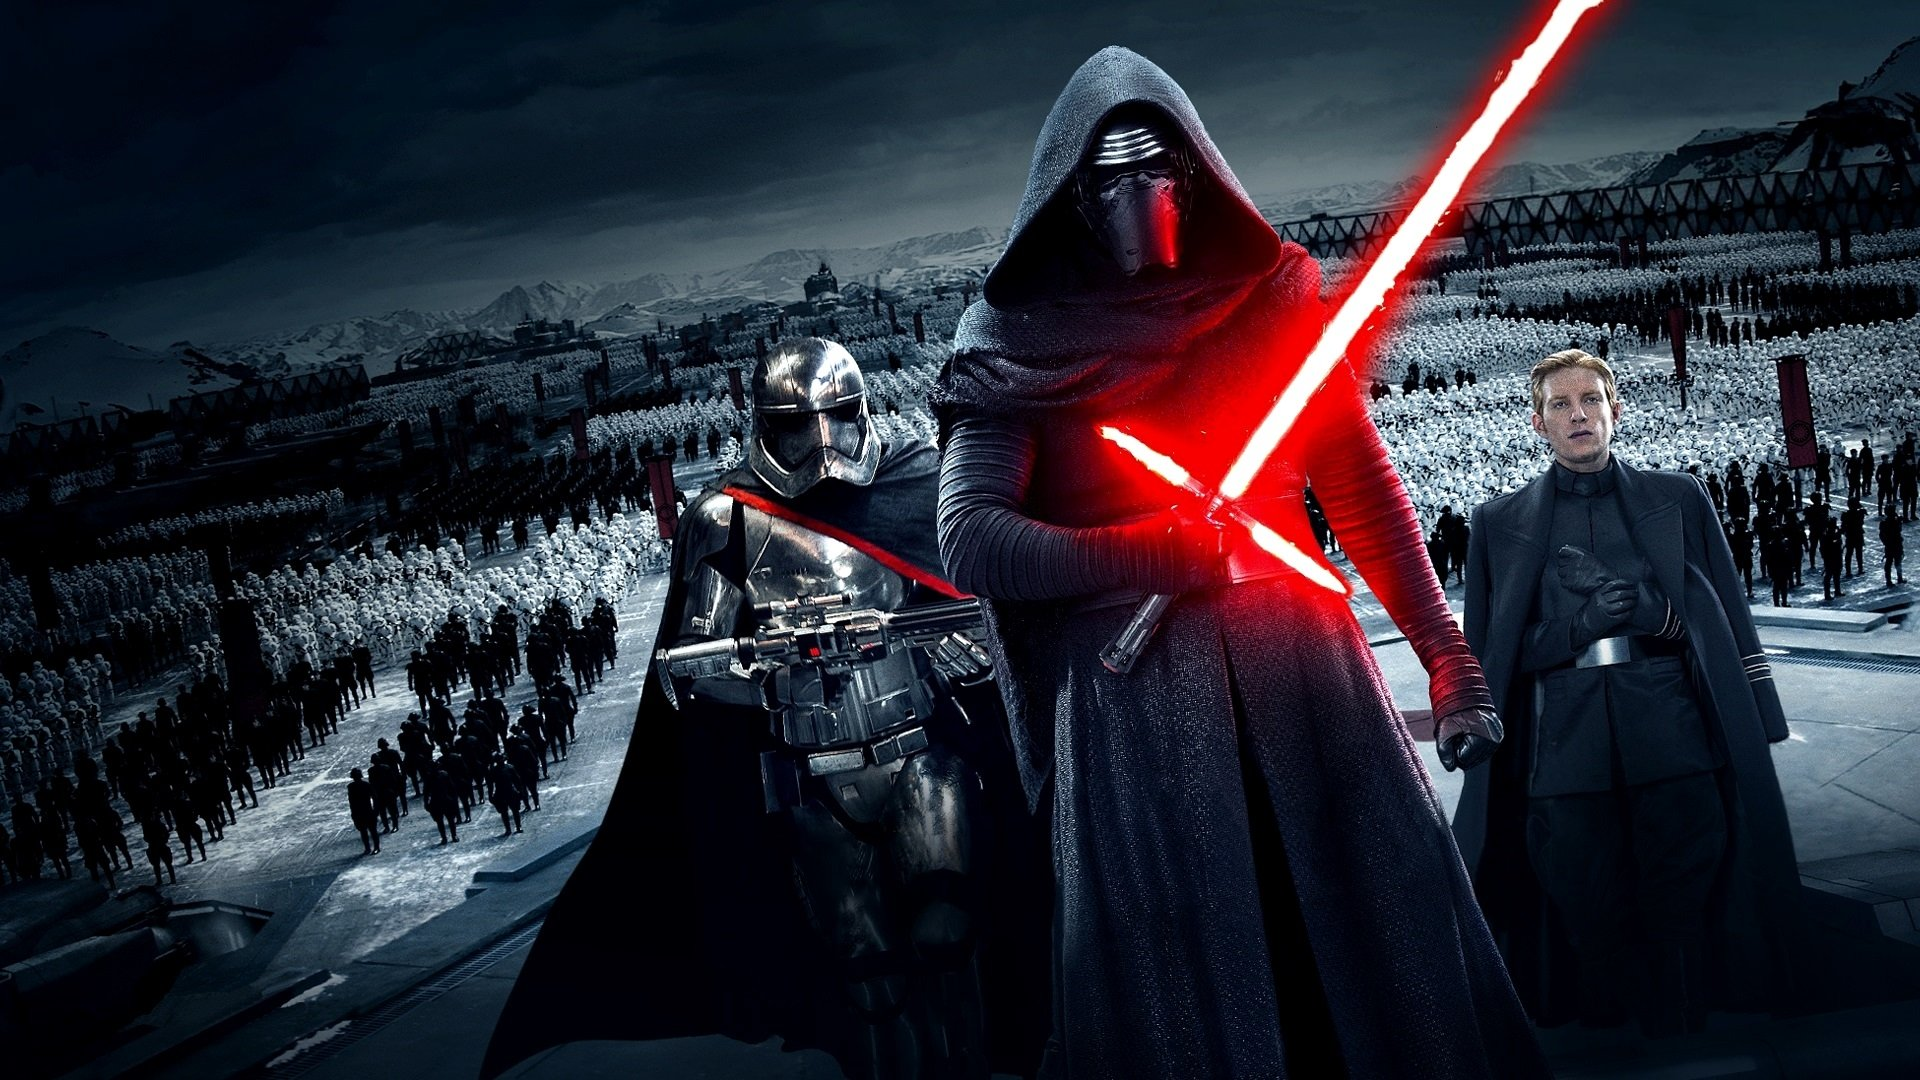 168 Star Wars Episode Vii The Force Awakens Hd Wallpapers